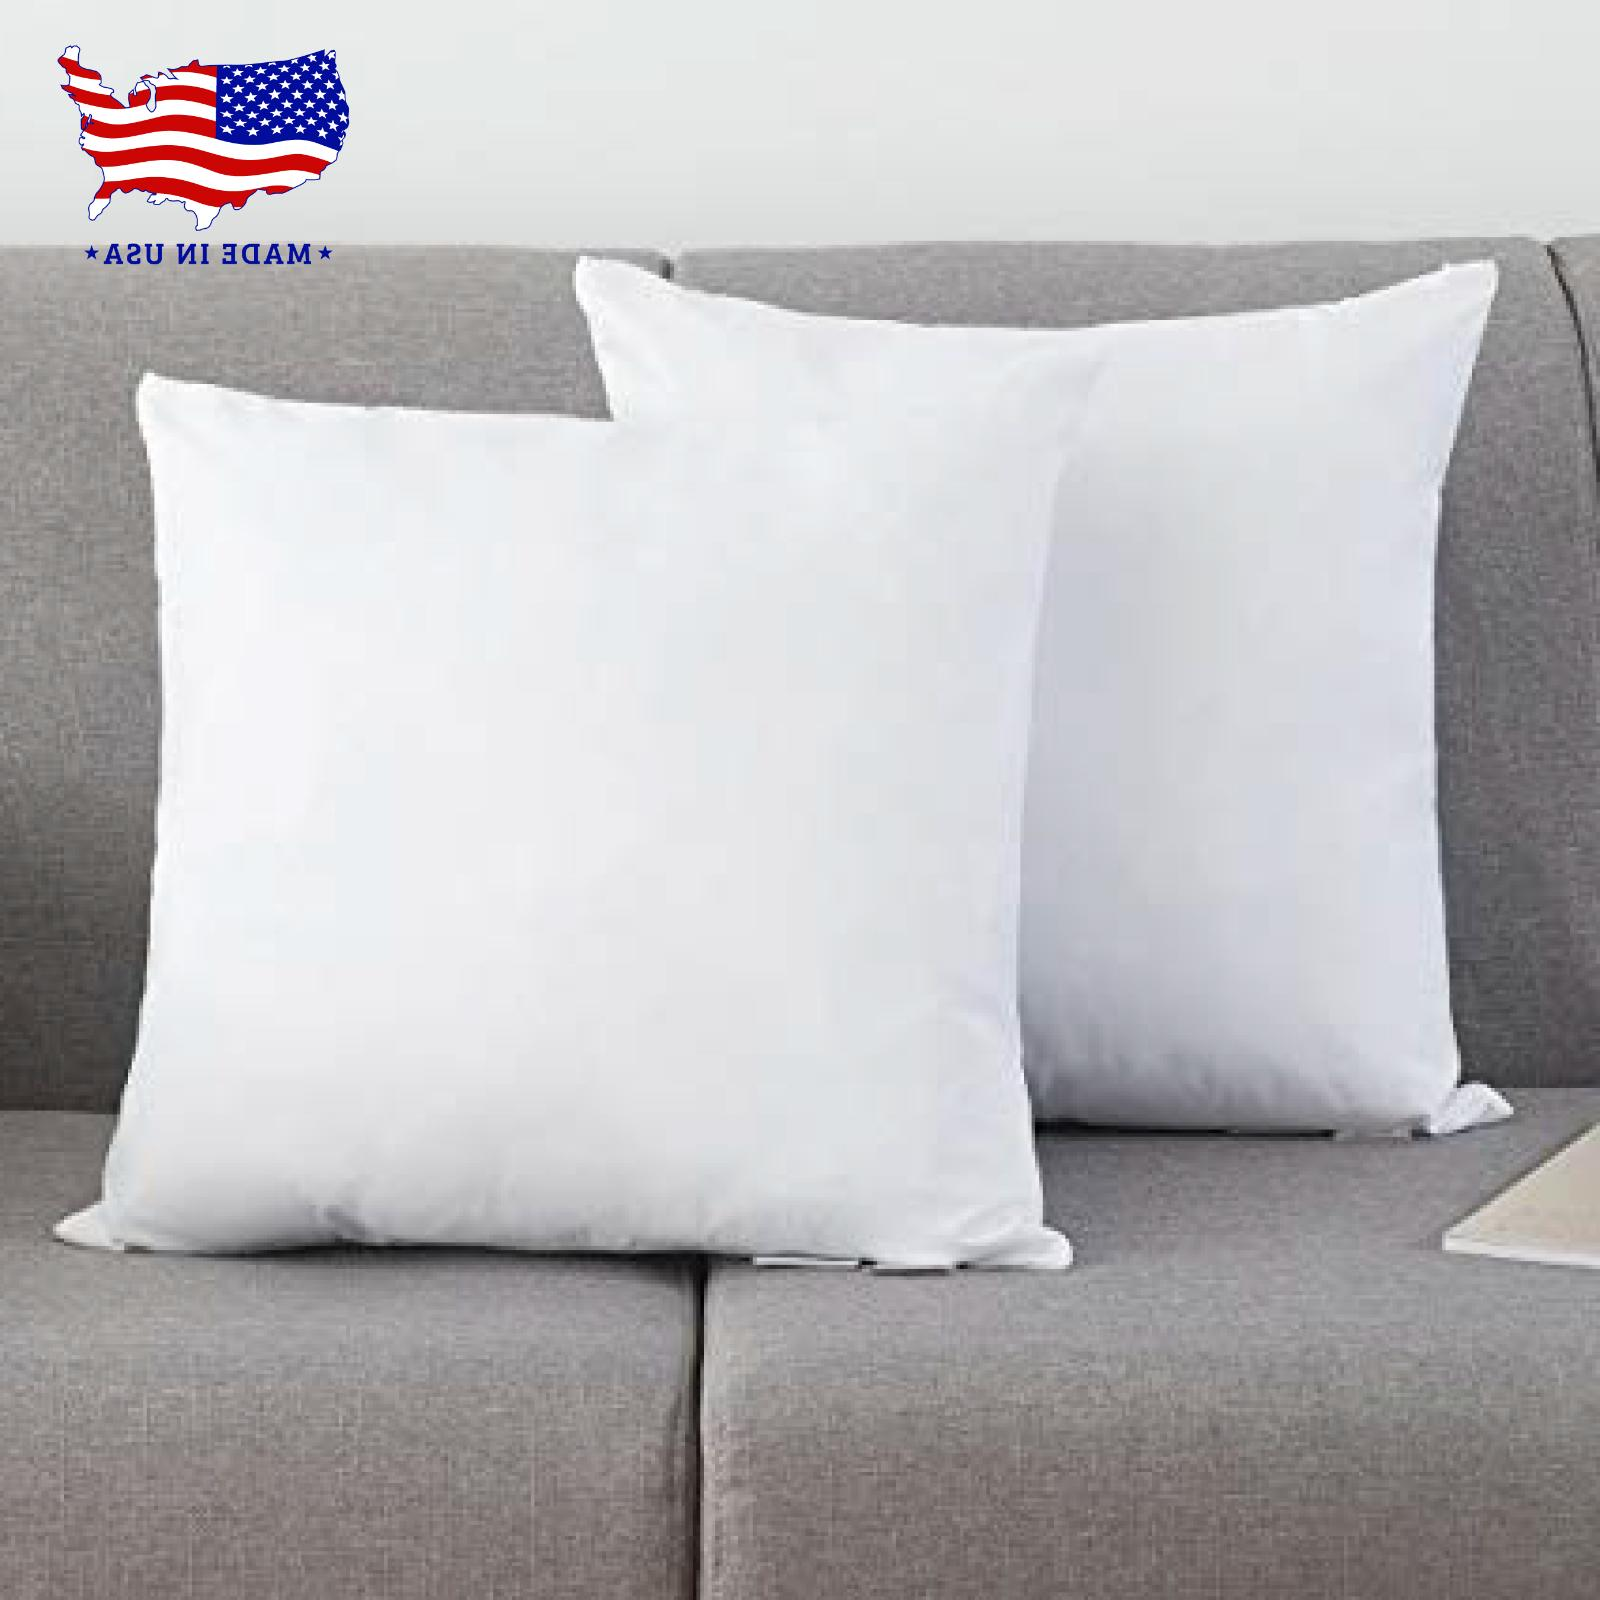 Throw Pillow Inserts Hypoallergenic Made in 1